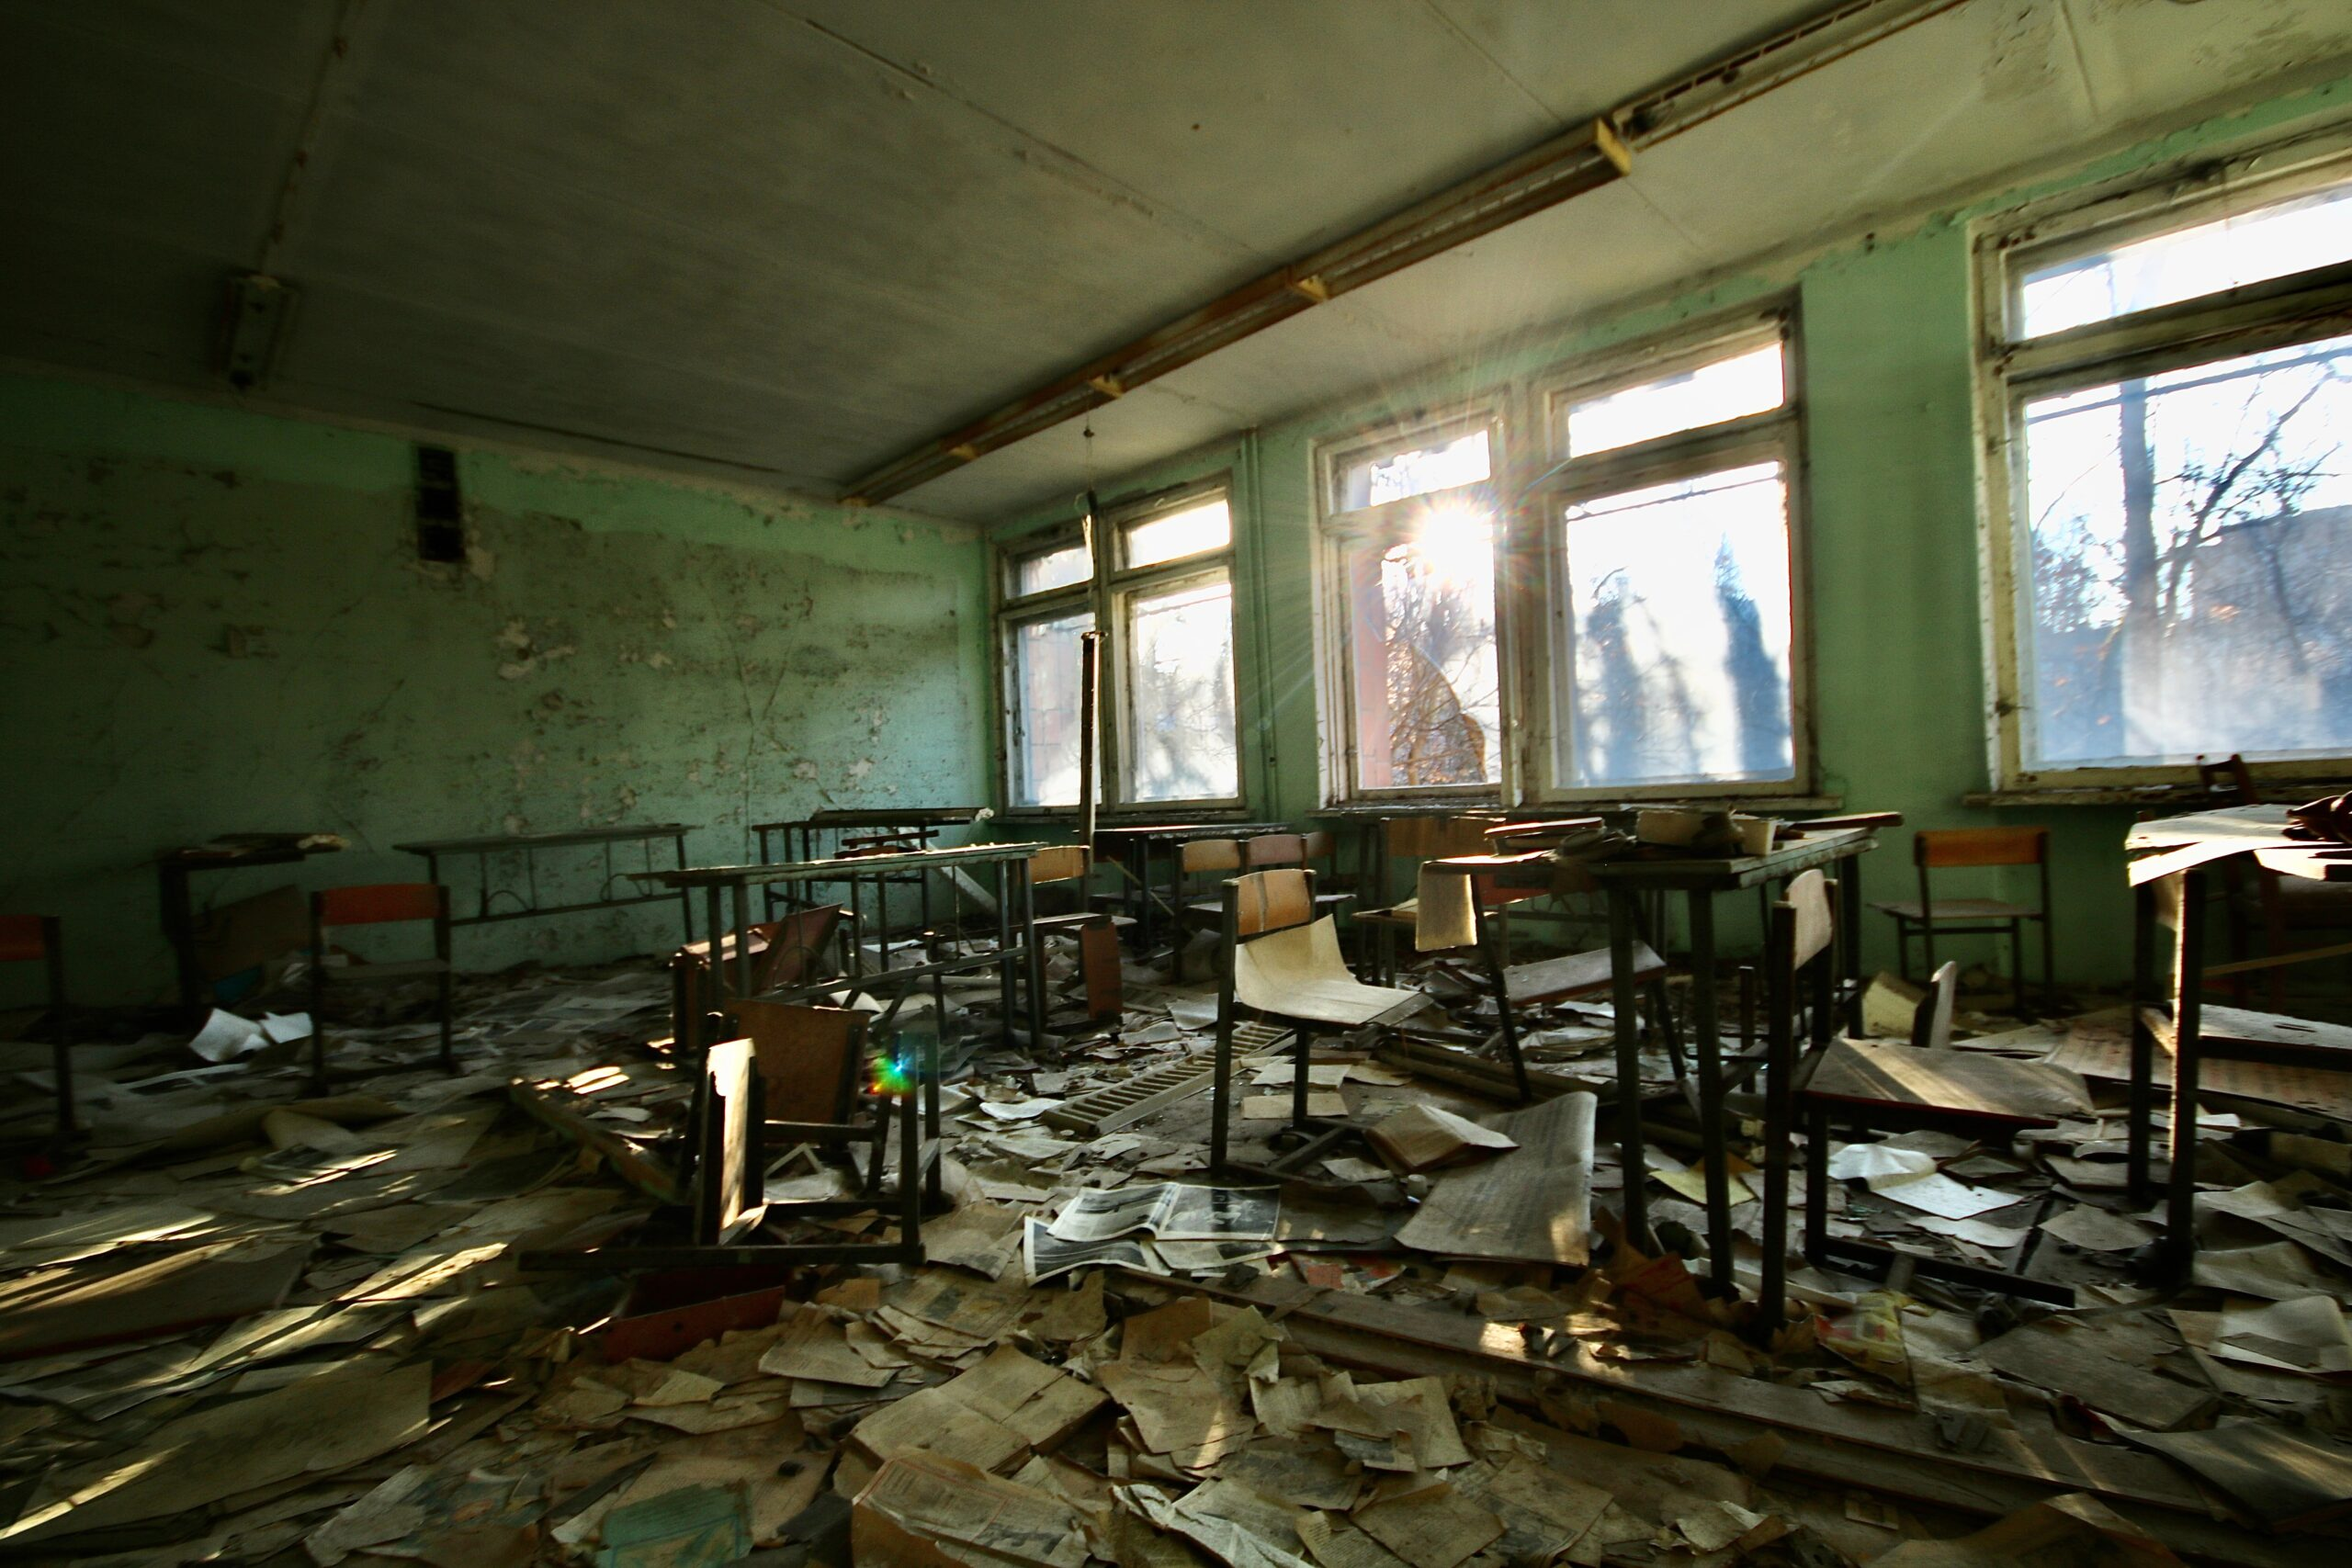 The Empty Classrooms of Qalamoun